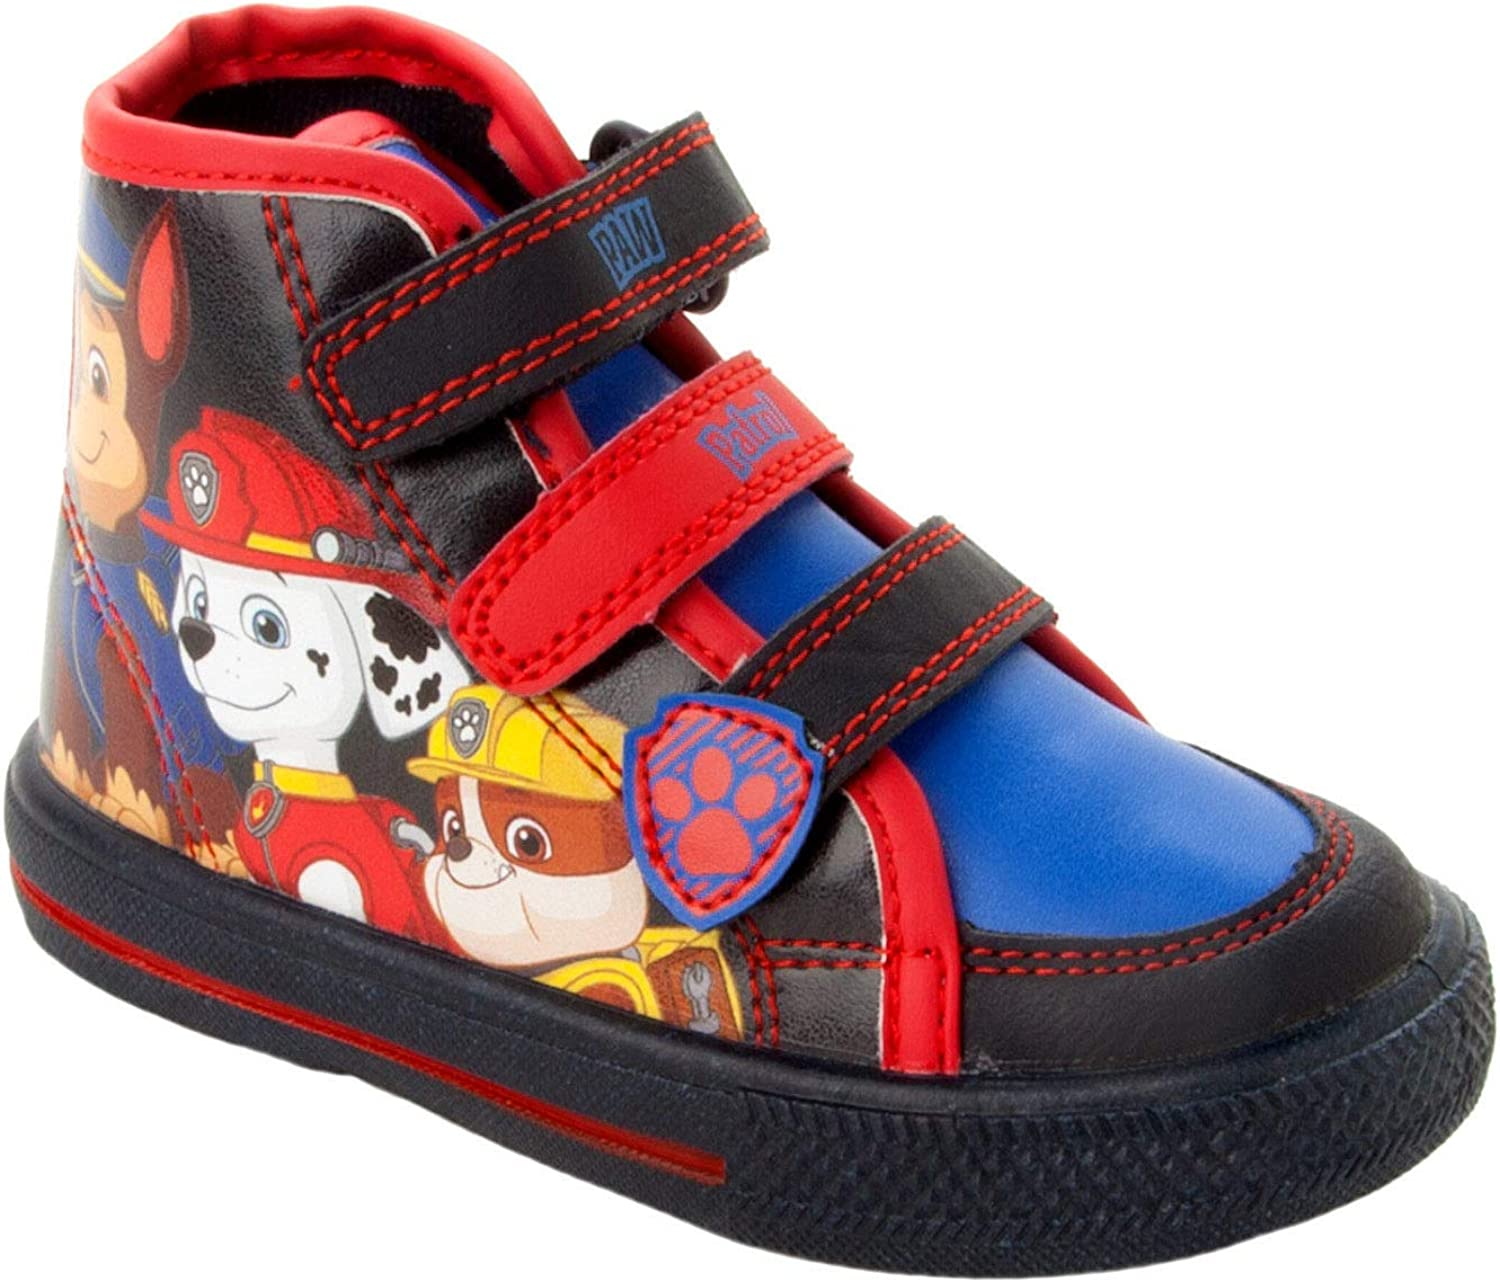 TOP Trainers Shoes Boots Infants Size